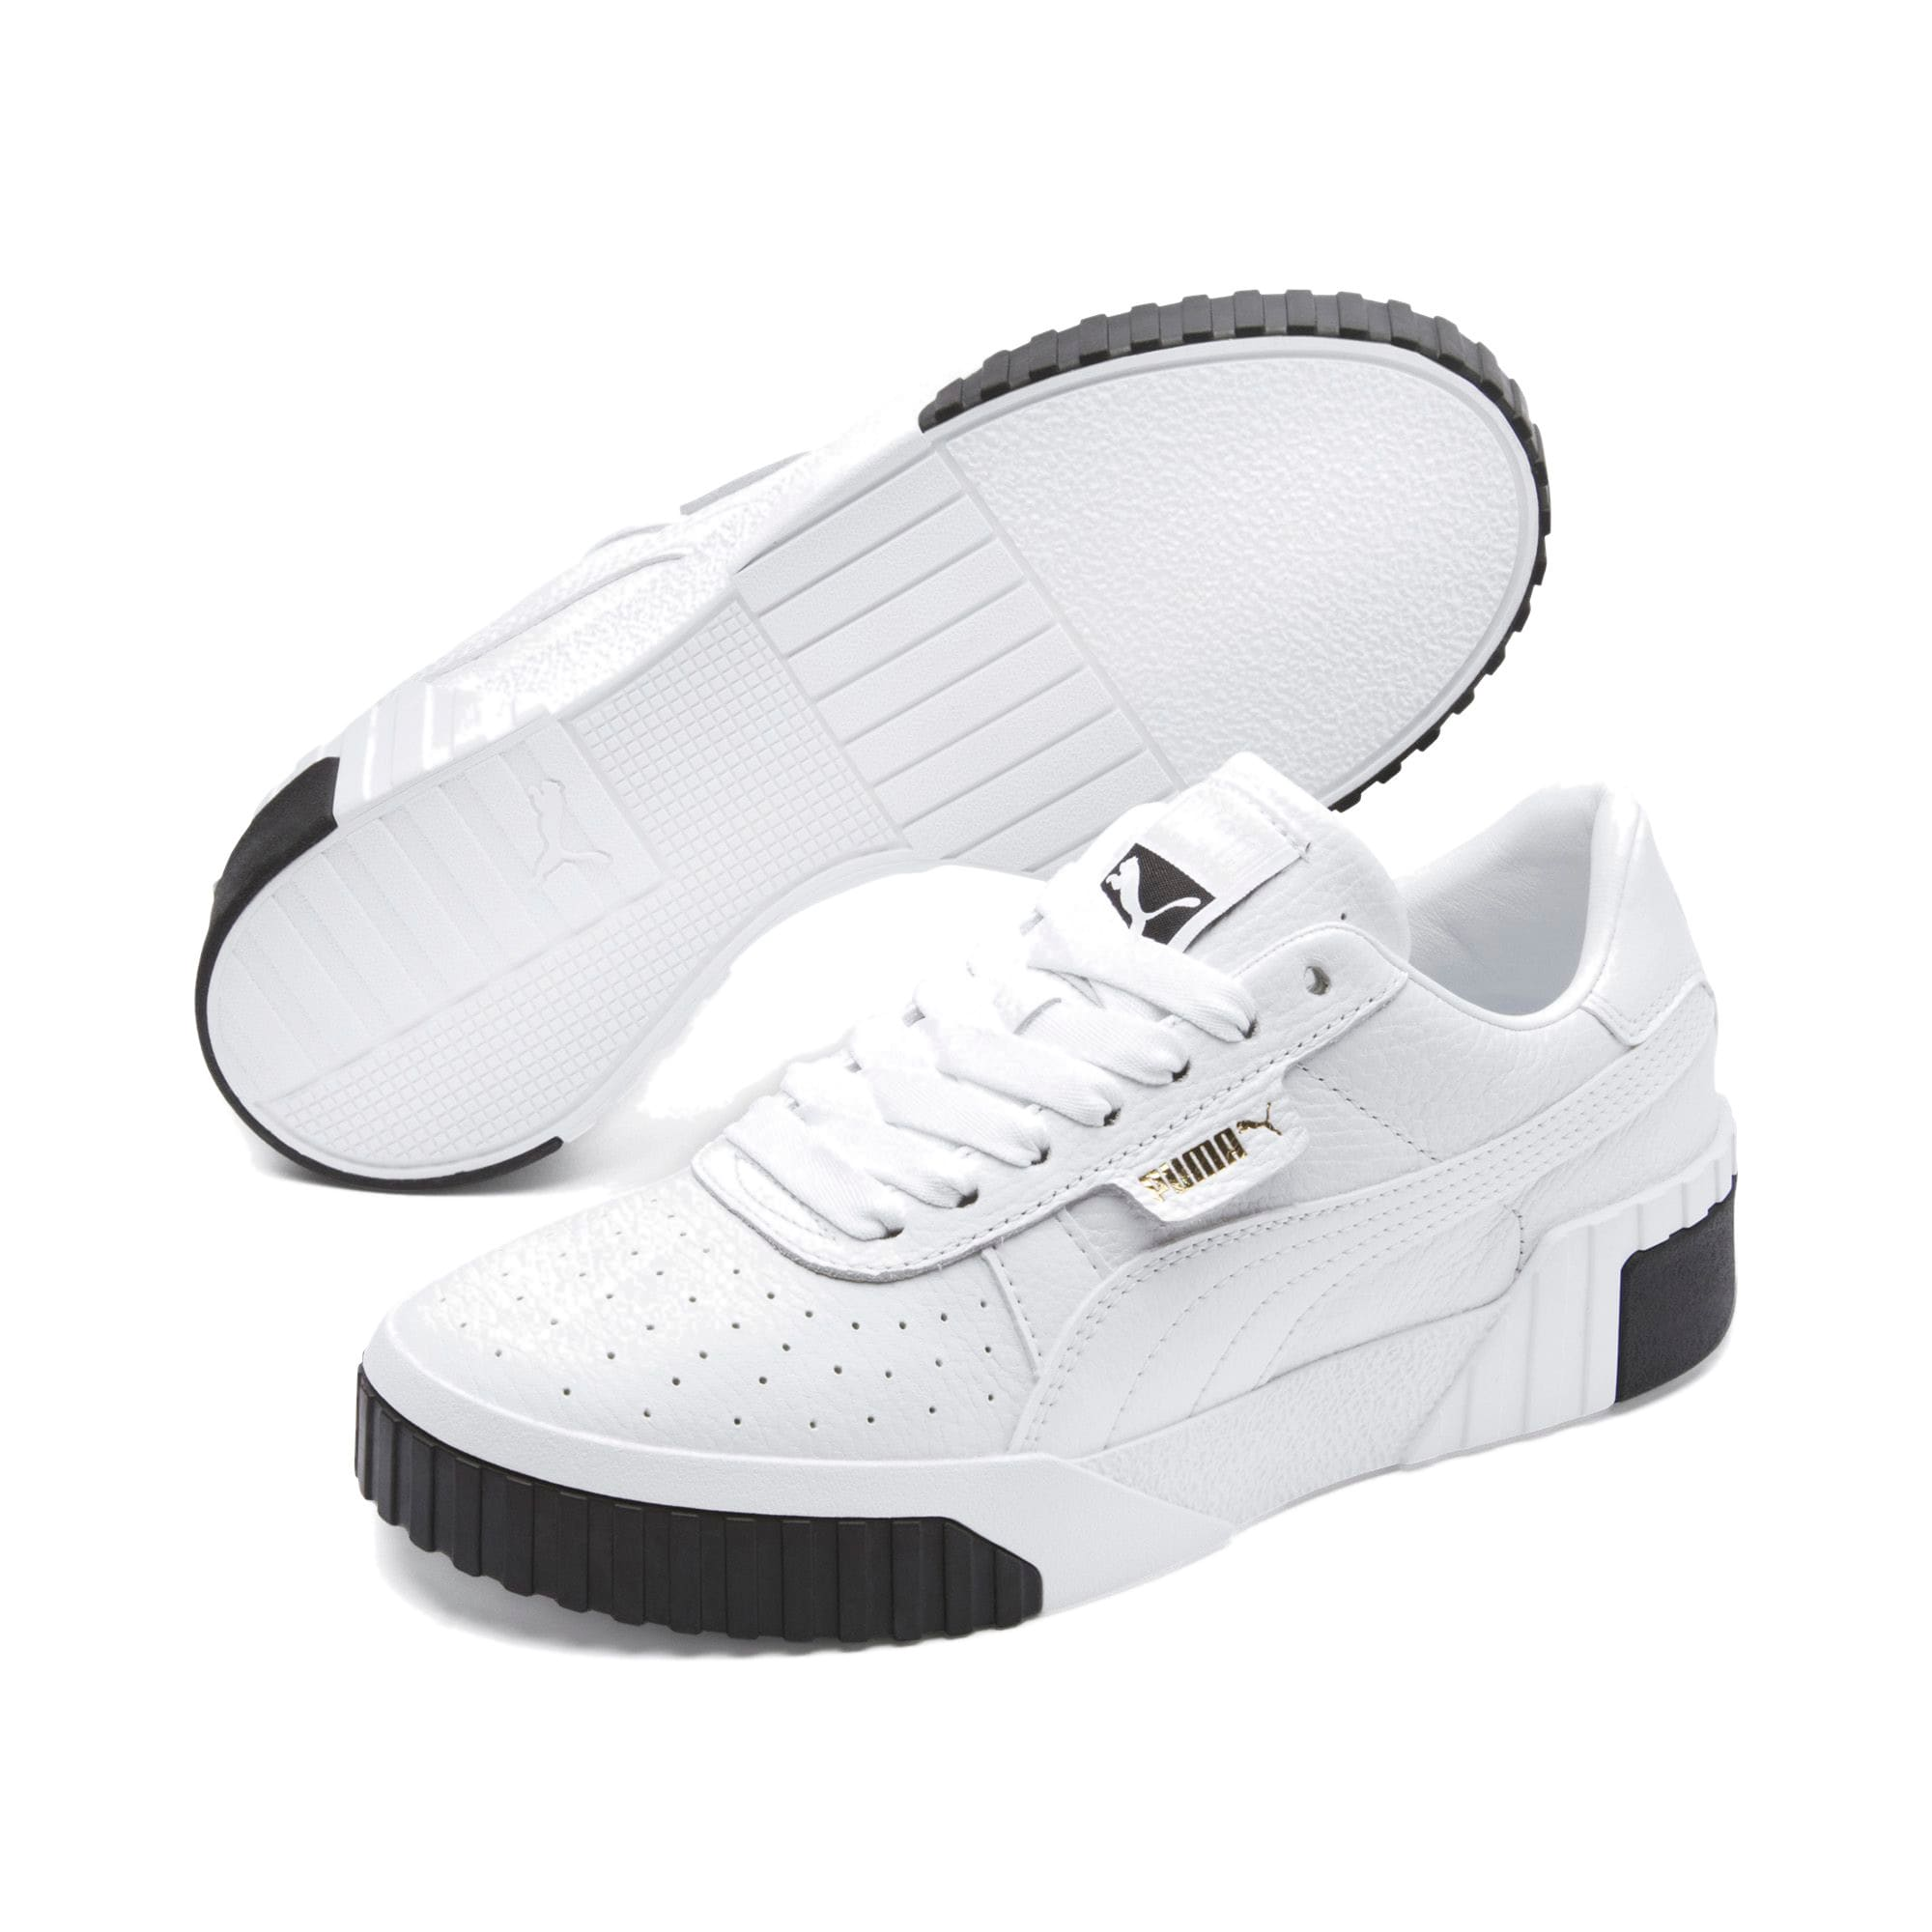 Thumbnail 3 of Cali Women's Trainers, Puma White-Puma Black, medium